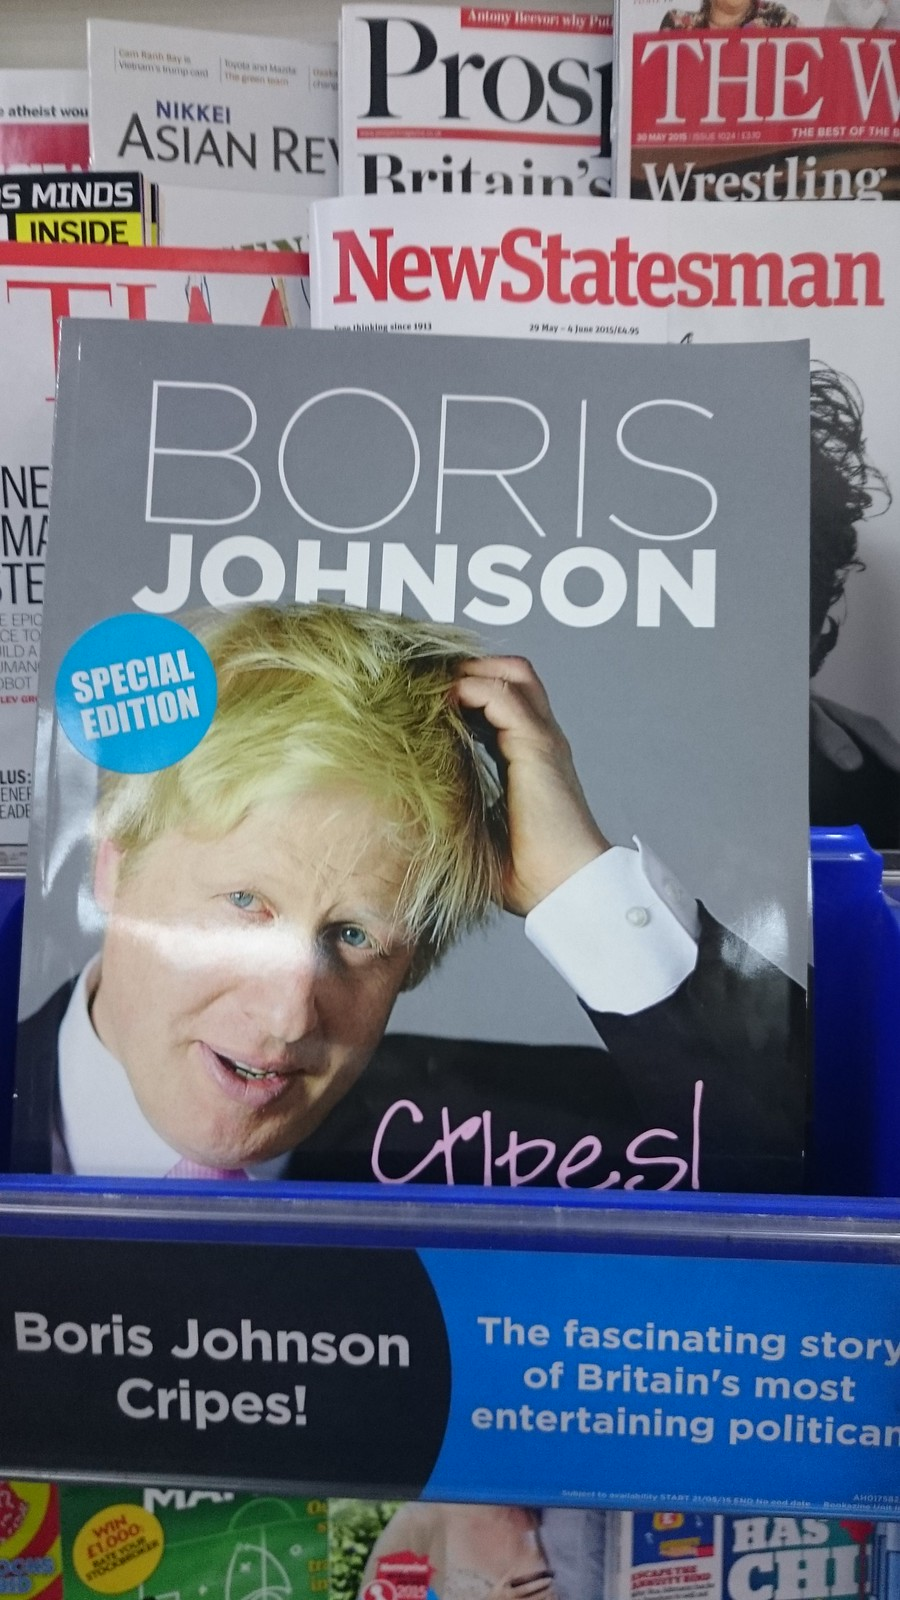 Boris Johnson - Cripes!